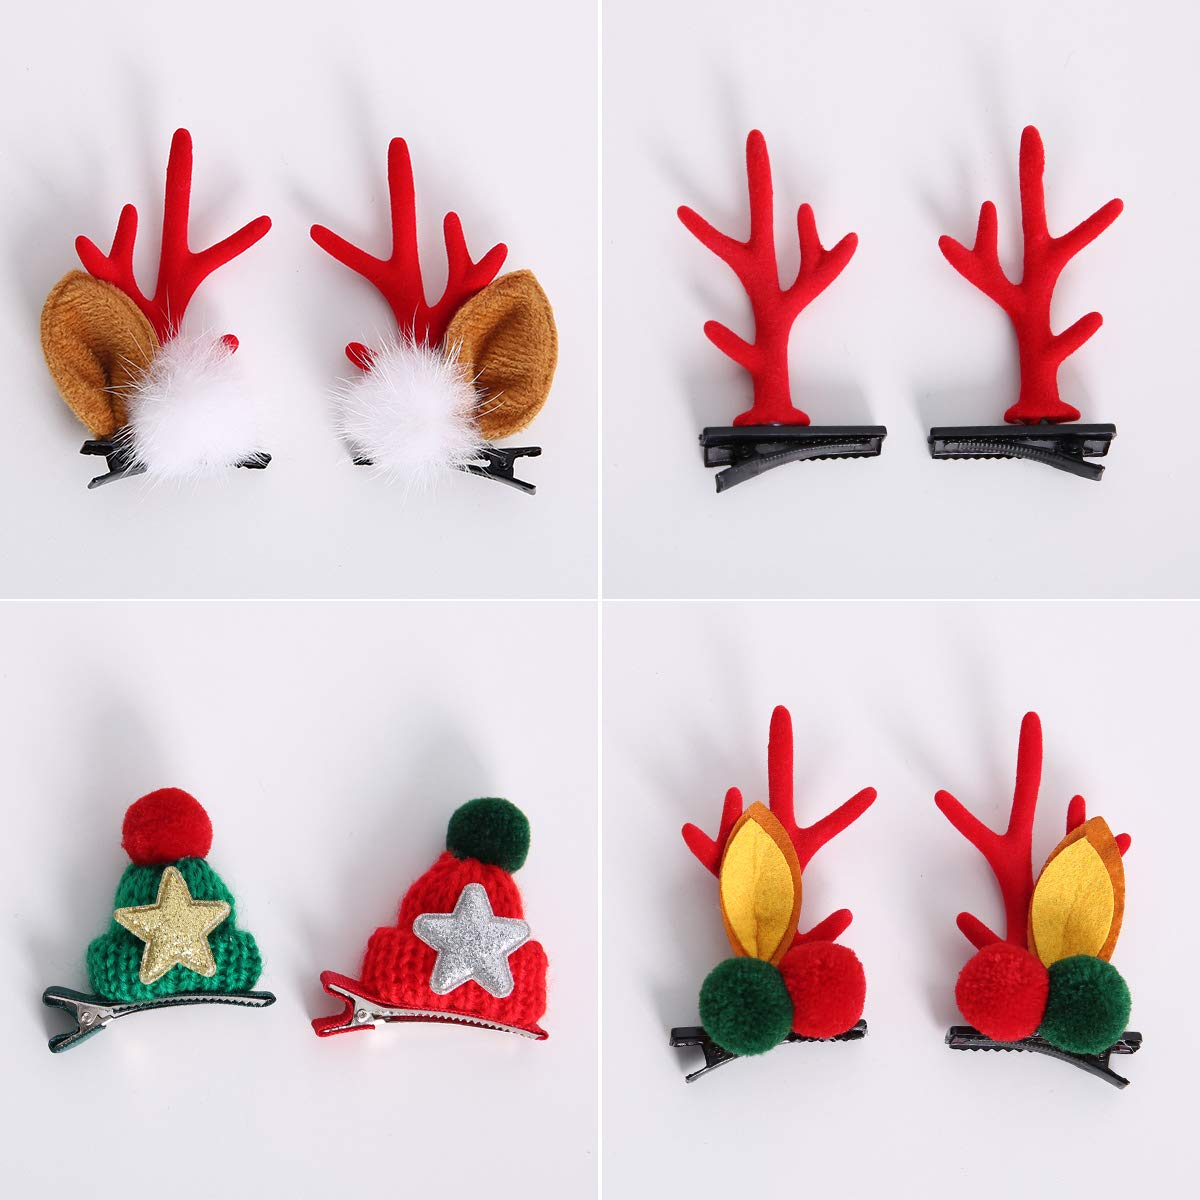 DAWOOWOO 8Pcs Christmas Hair Clips Hairpin Hair Accessories Gift Cute Hairpins Hair Style Christmas Decorations Hair Décor Reindeer Christmas Hat Pins Golden Festival Holiday Red Ornament